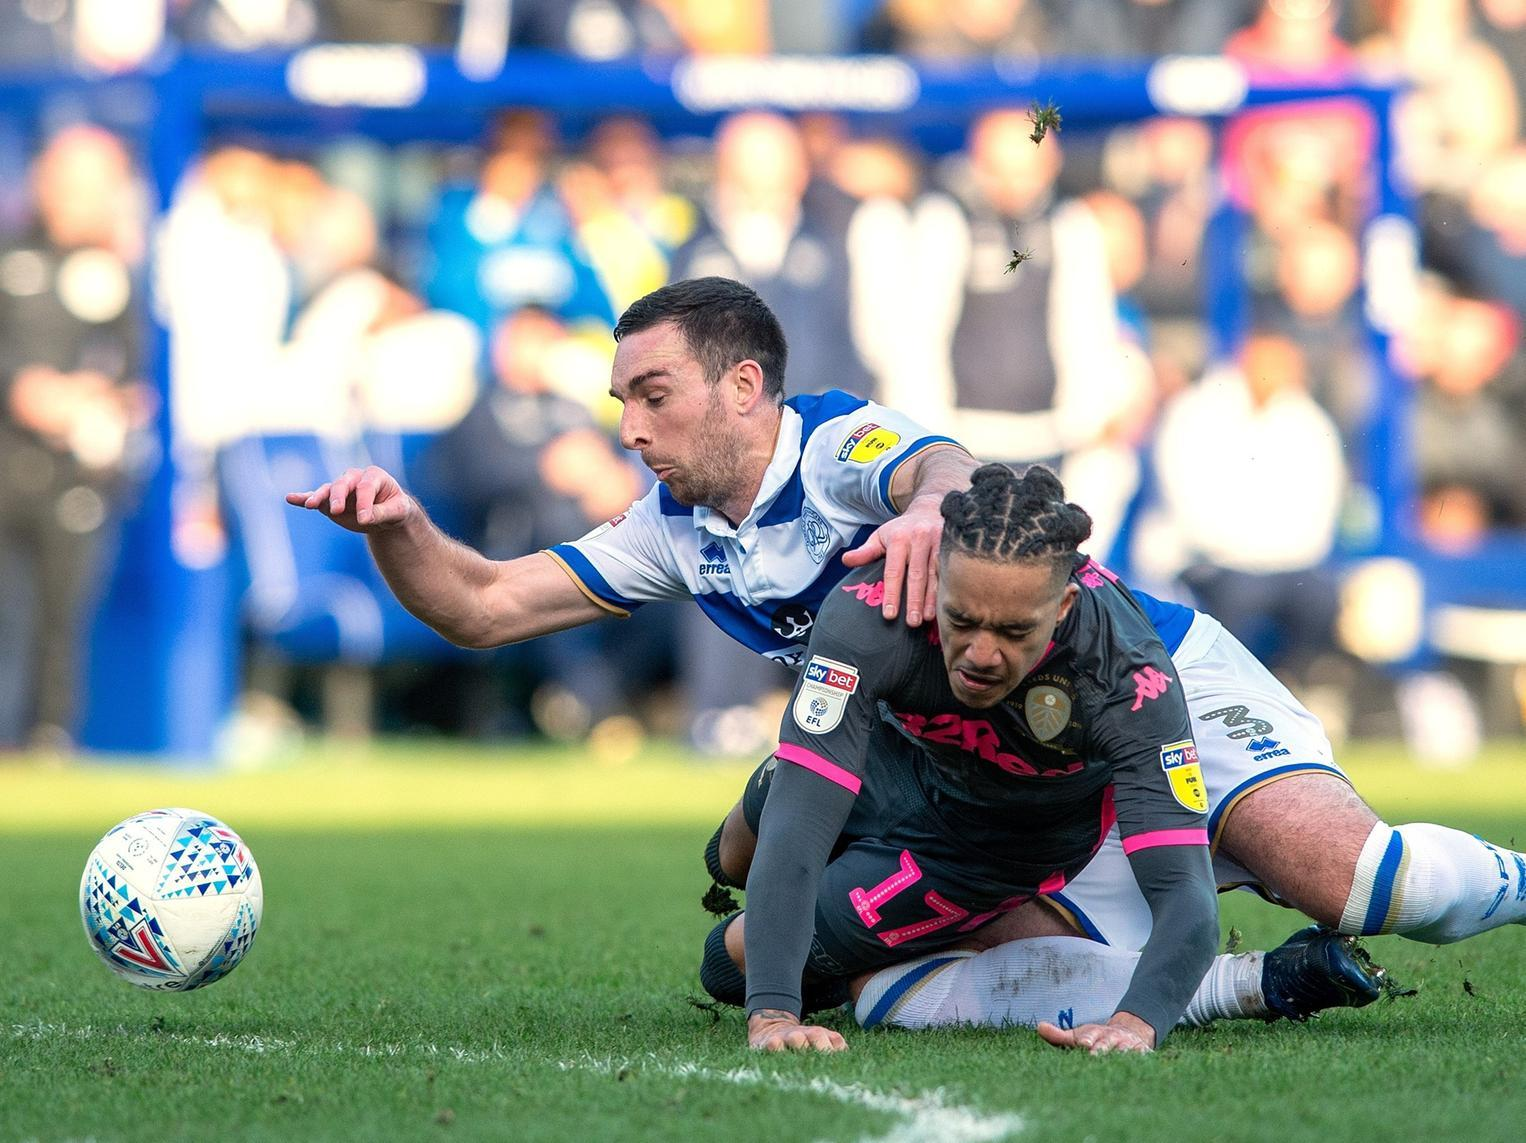 Shortening of Leeds United's points gap is staggering but it proves Championship oxymoron - David Prutton